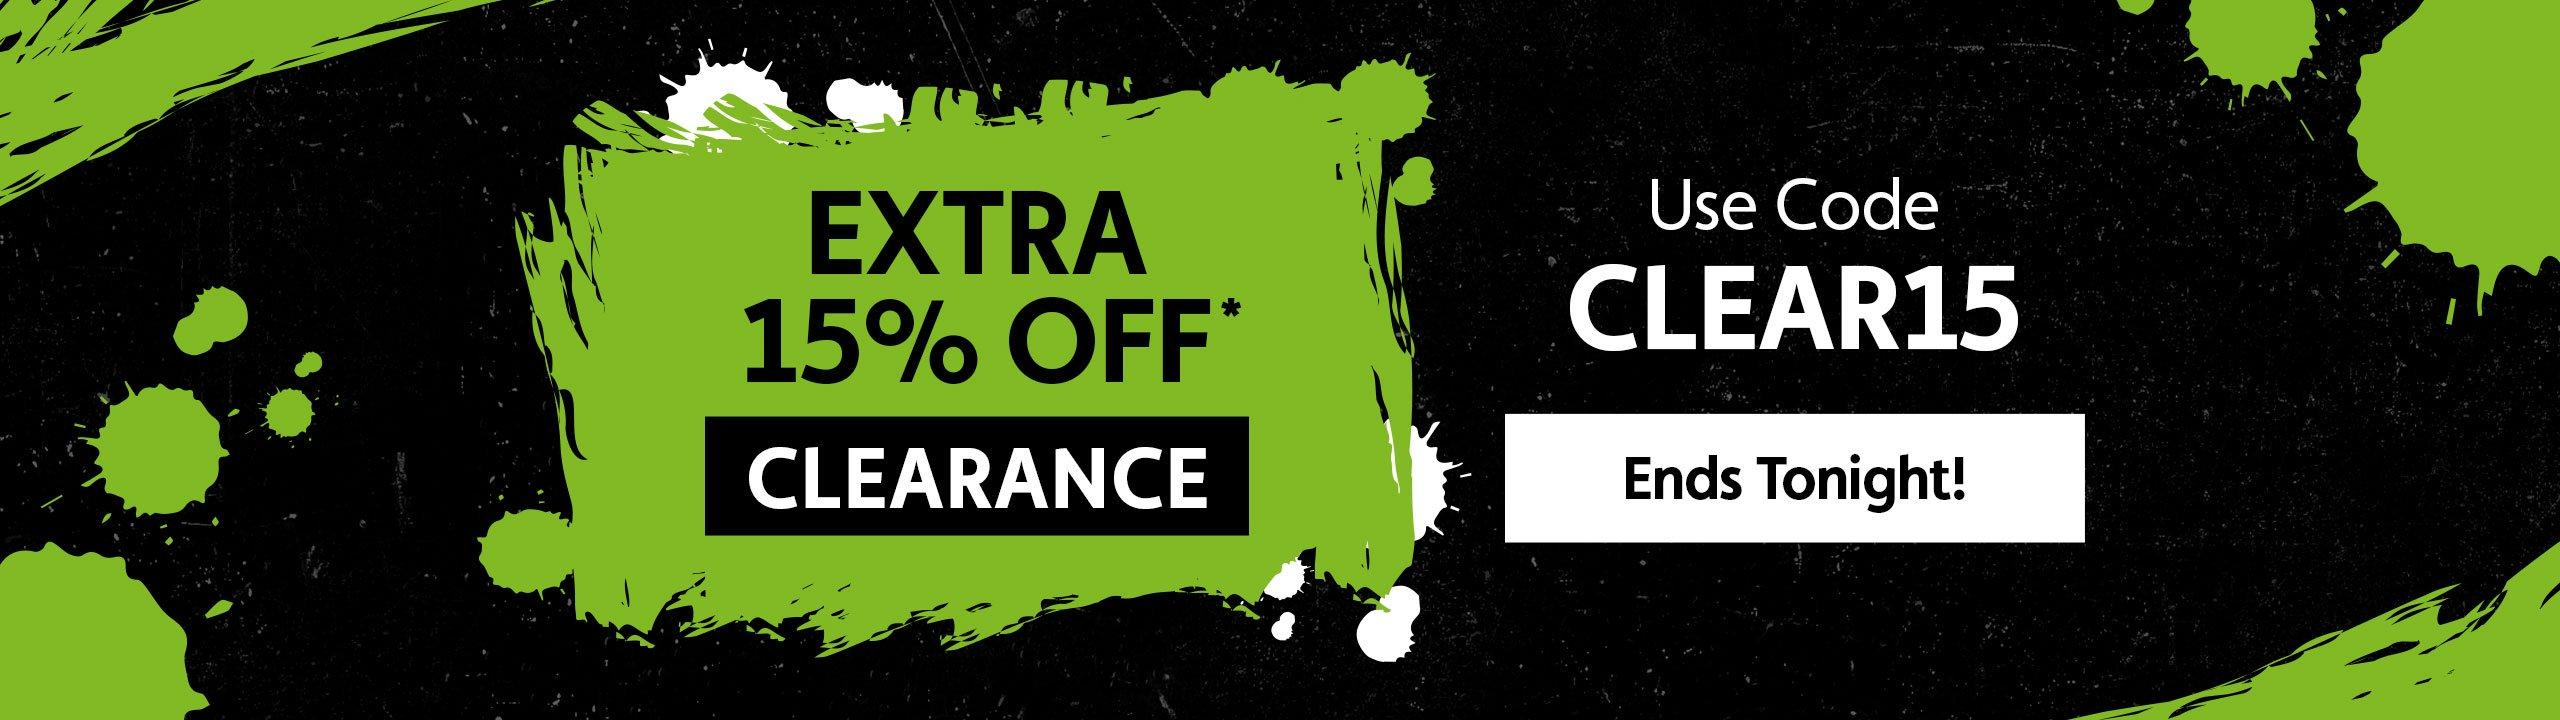 Extra 15% Off* Clearance